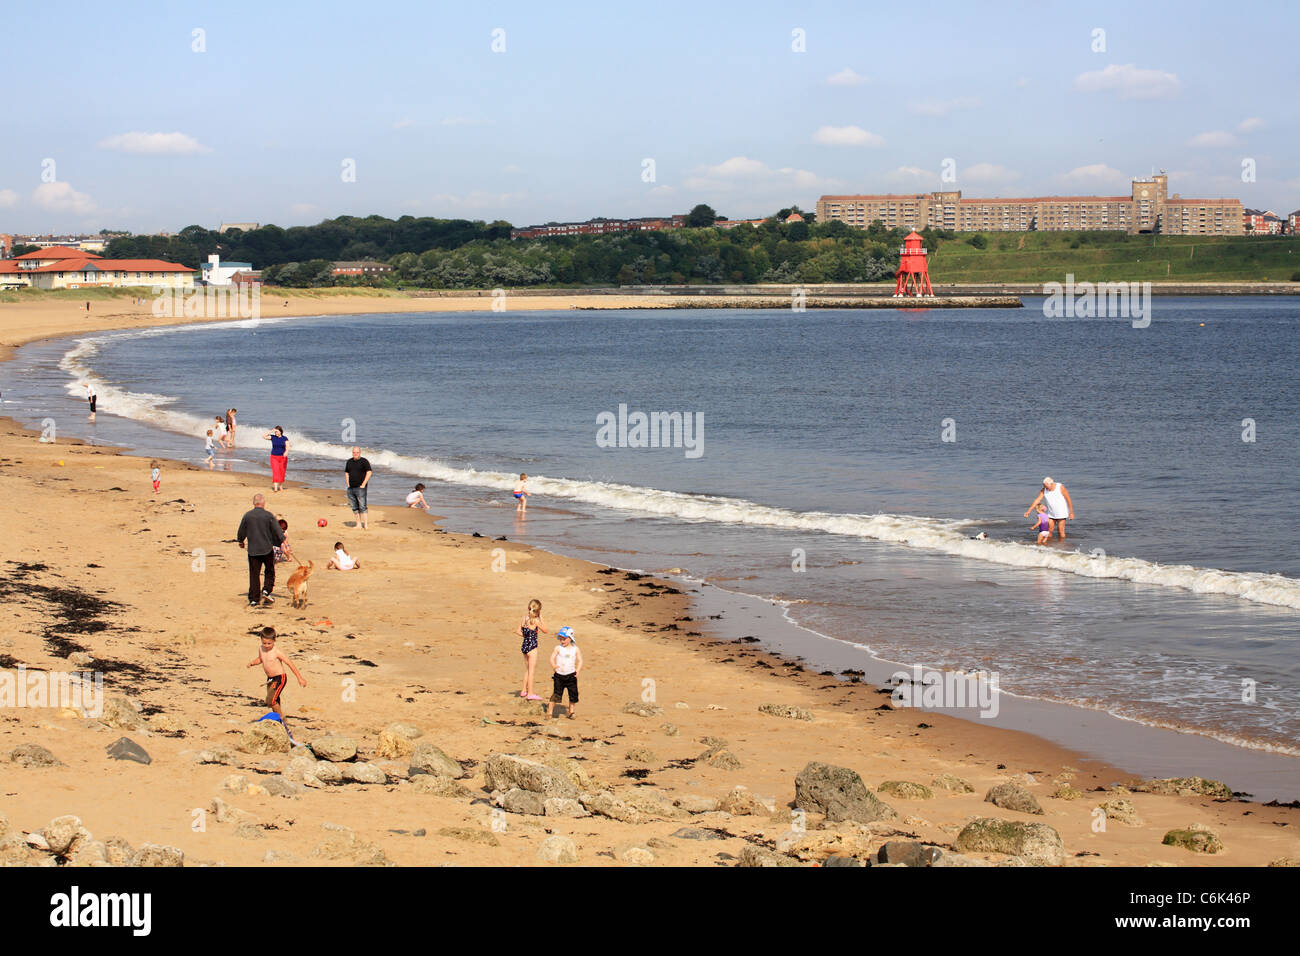 Families playing at the seaside, the Herd Sand or Littlehaven beach, South Shields, North East England, UK - Stock Image